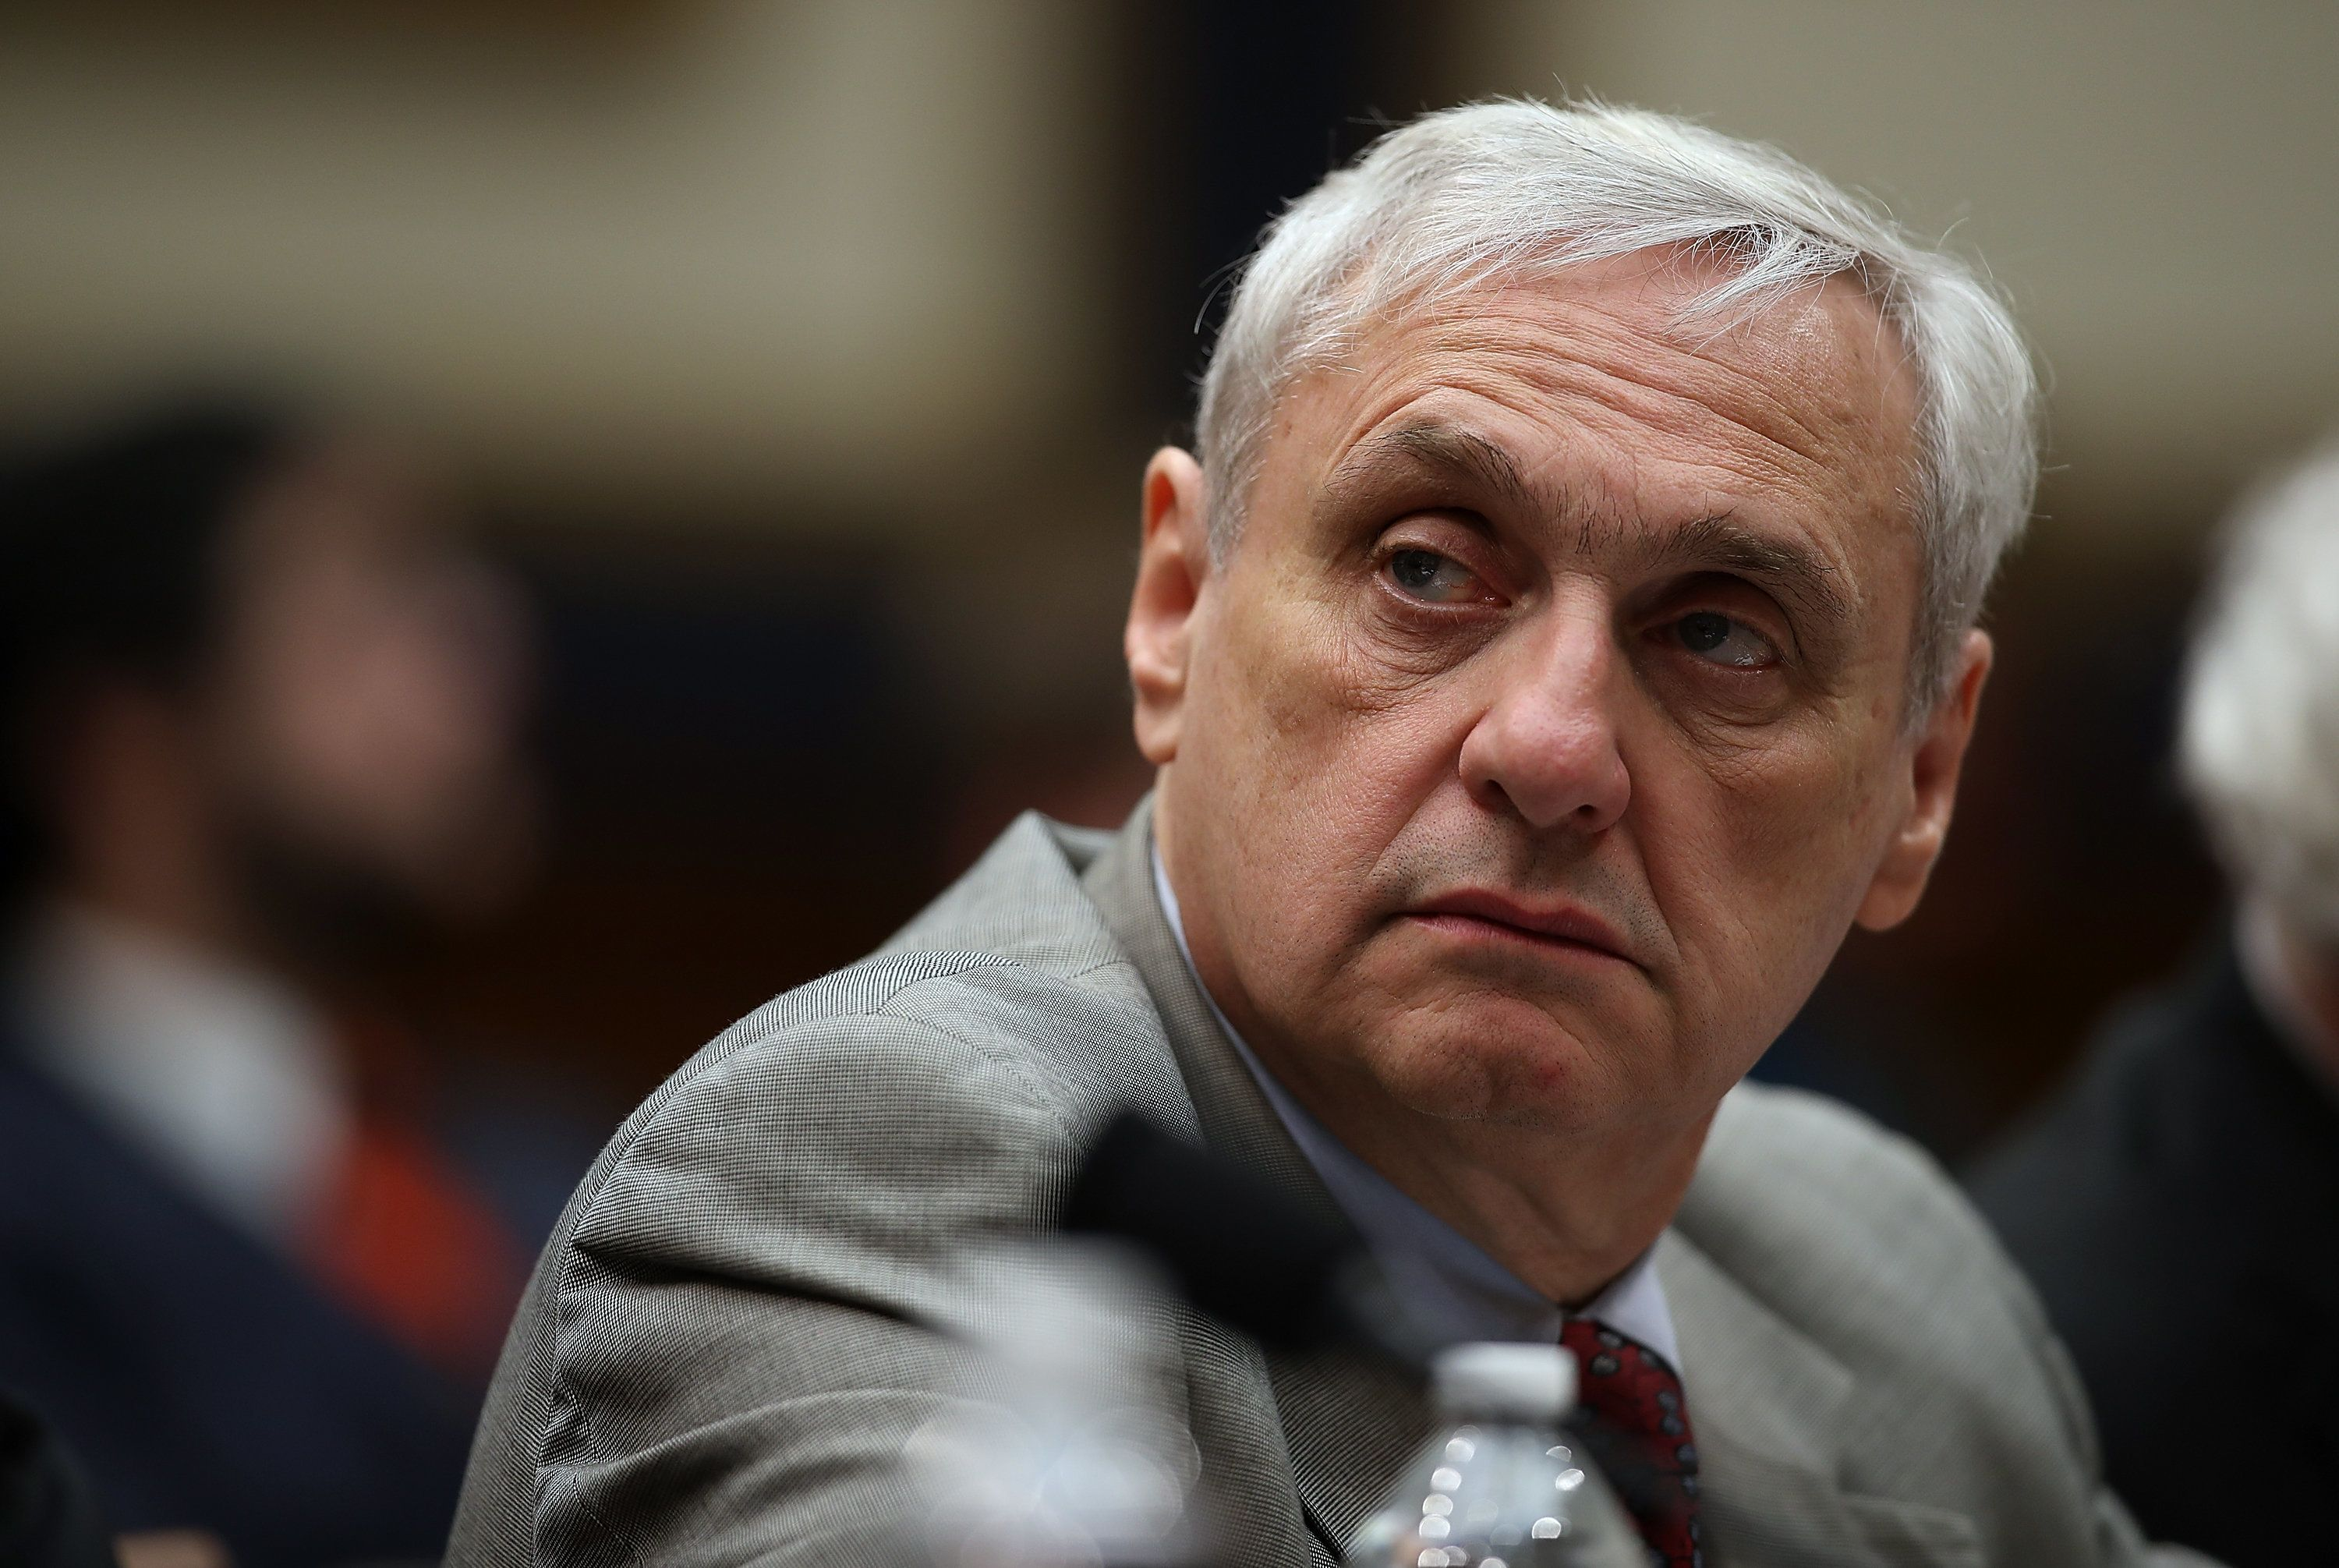 Judge Alex Kozinski, who has served on the 9th Circuit since 1985, is known for his candid and colorful court opini